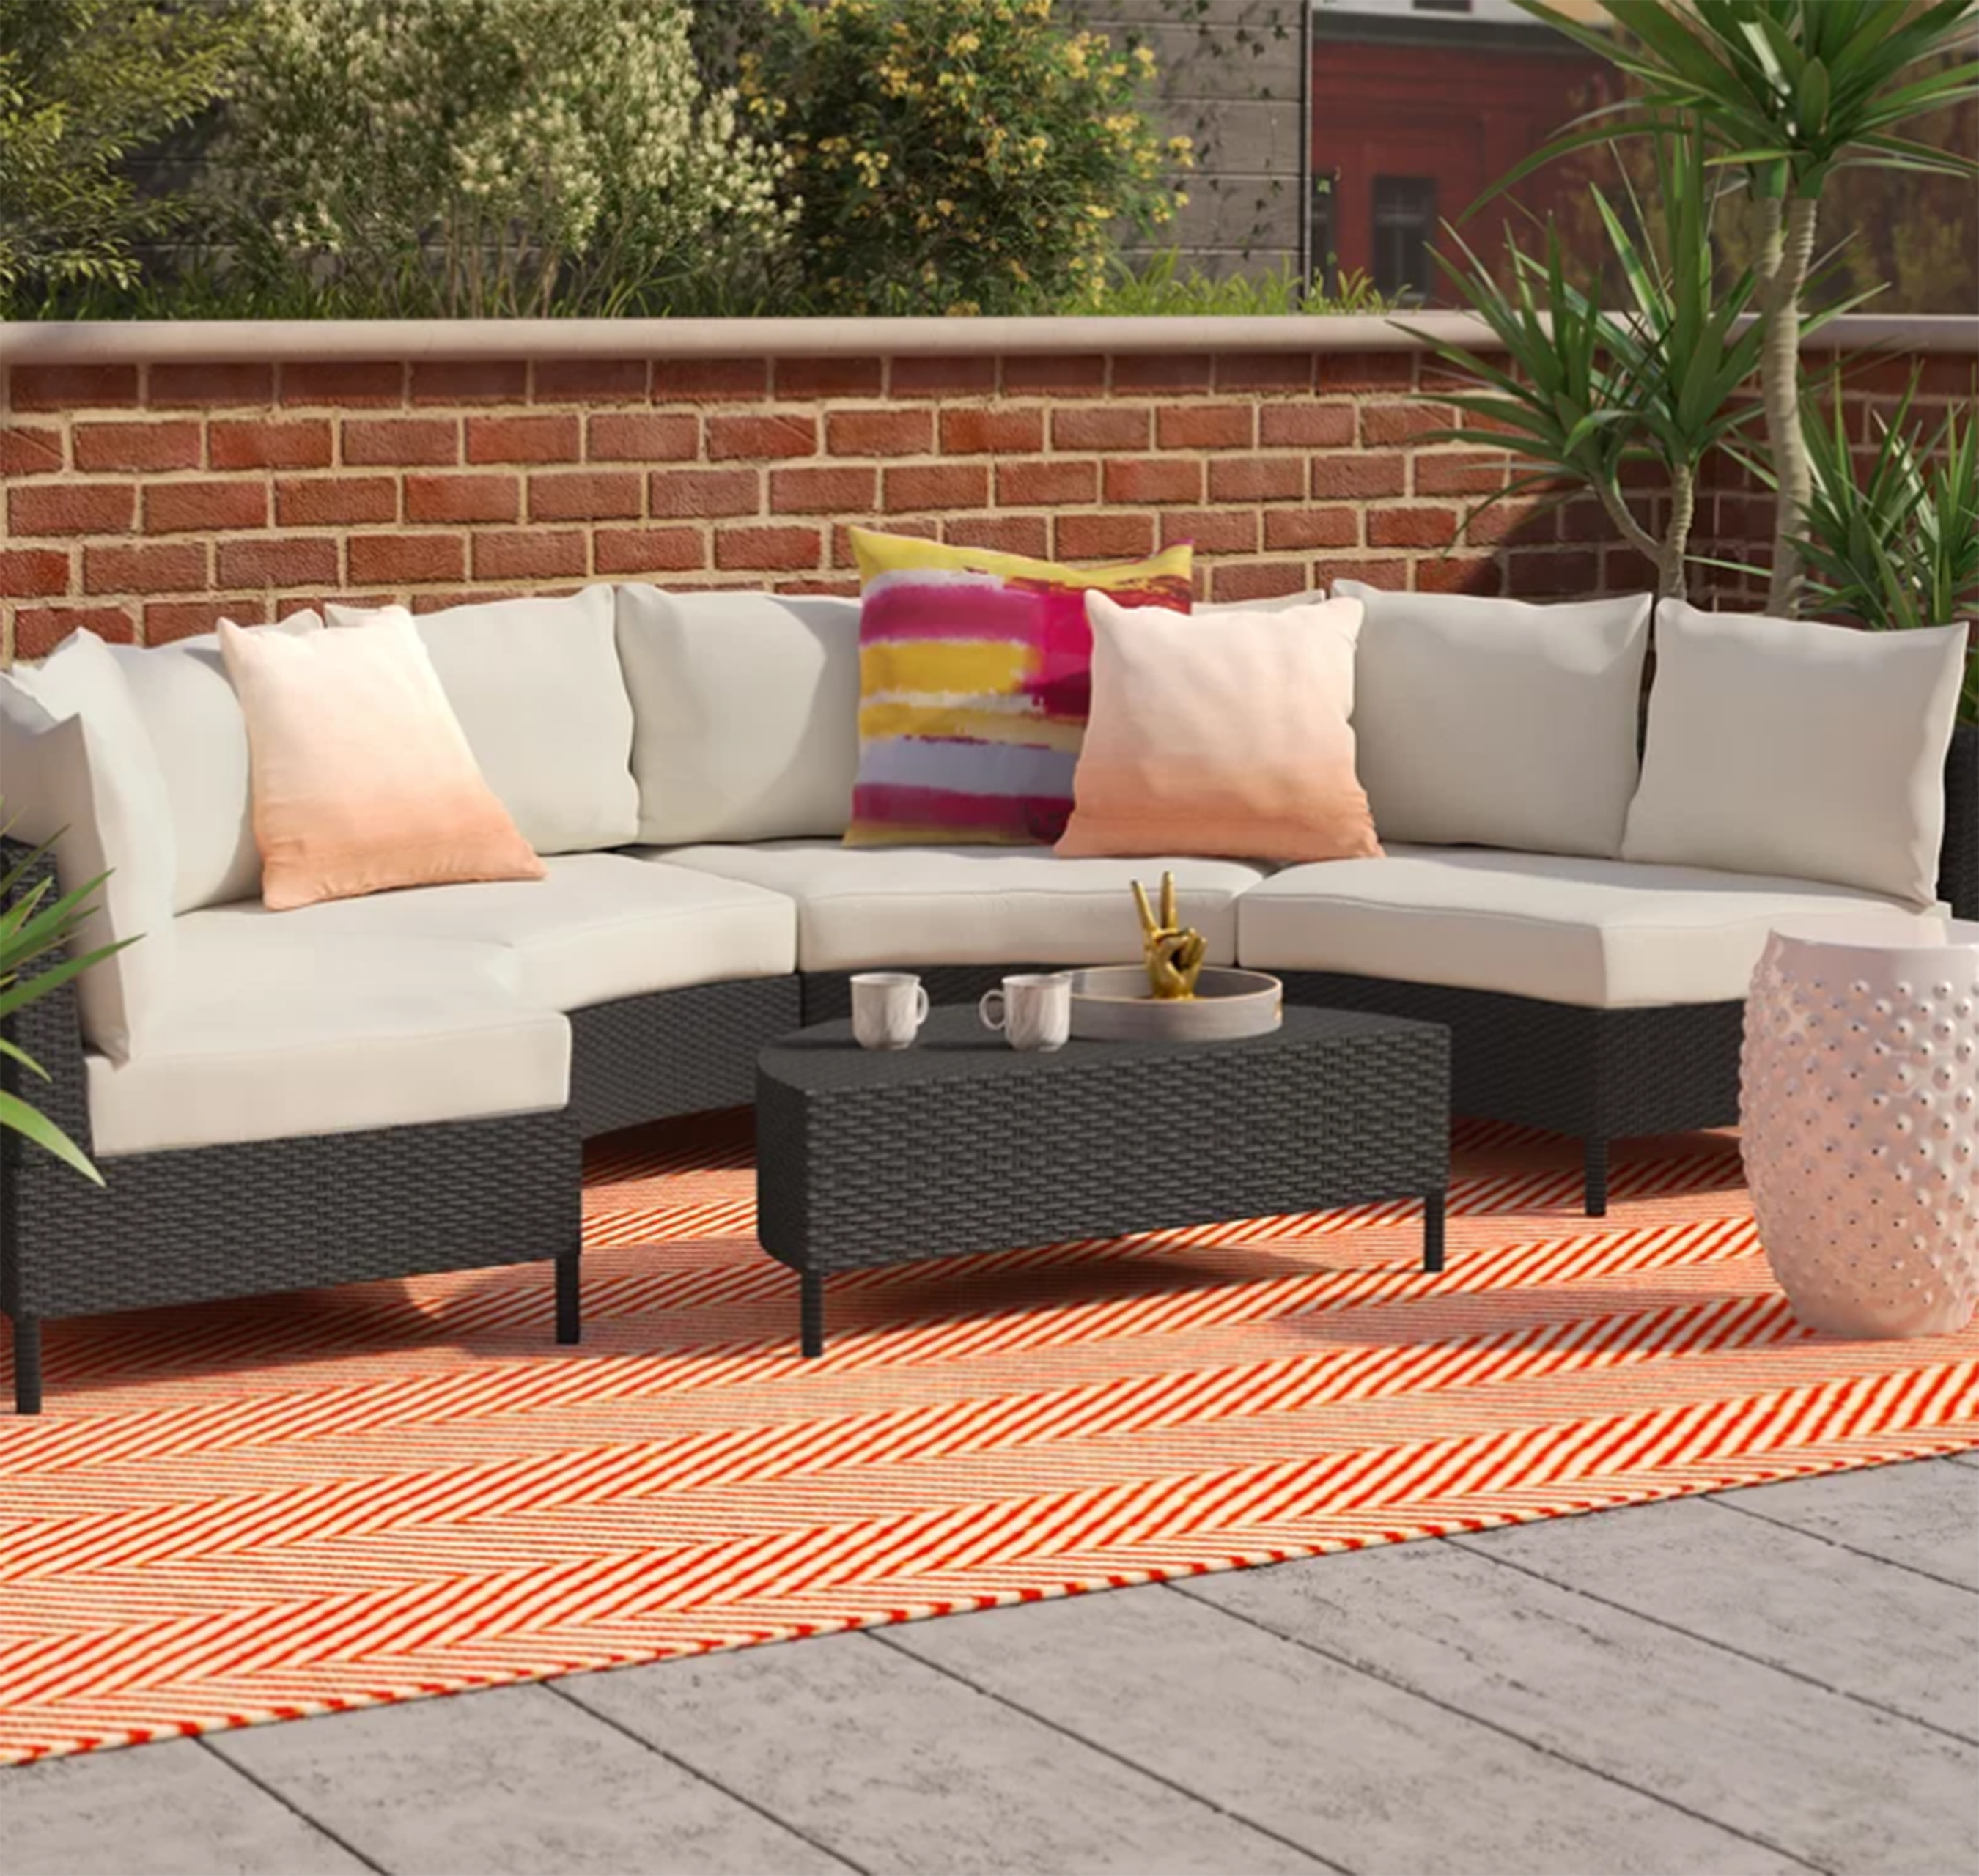 [%Hot Deal! 51% Off Hewson Outdoor Patio Acacia Wood Coffee Table Inside Most Current Hursey Patio Sofas|Hursey Patio Sofas In Most Popular Hot Deal! 51% Off Hewson Outdoor Patio Acacia Wood Coffee Table|Most Up To Date Hursey Patio Sofas With Hot Deal! 51% Off Hewson Outdoor Patio Acacia Wood Coffee Table|Most Recently Released Hot Deal! 51% Off Hewson Outdoor Patio Acacia Wood Coffee Table Pertaining To Hursey Patio Sofas%] (View 1 of 20)